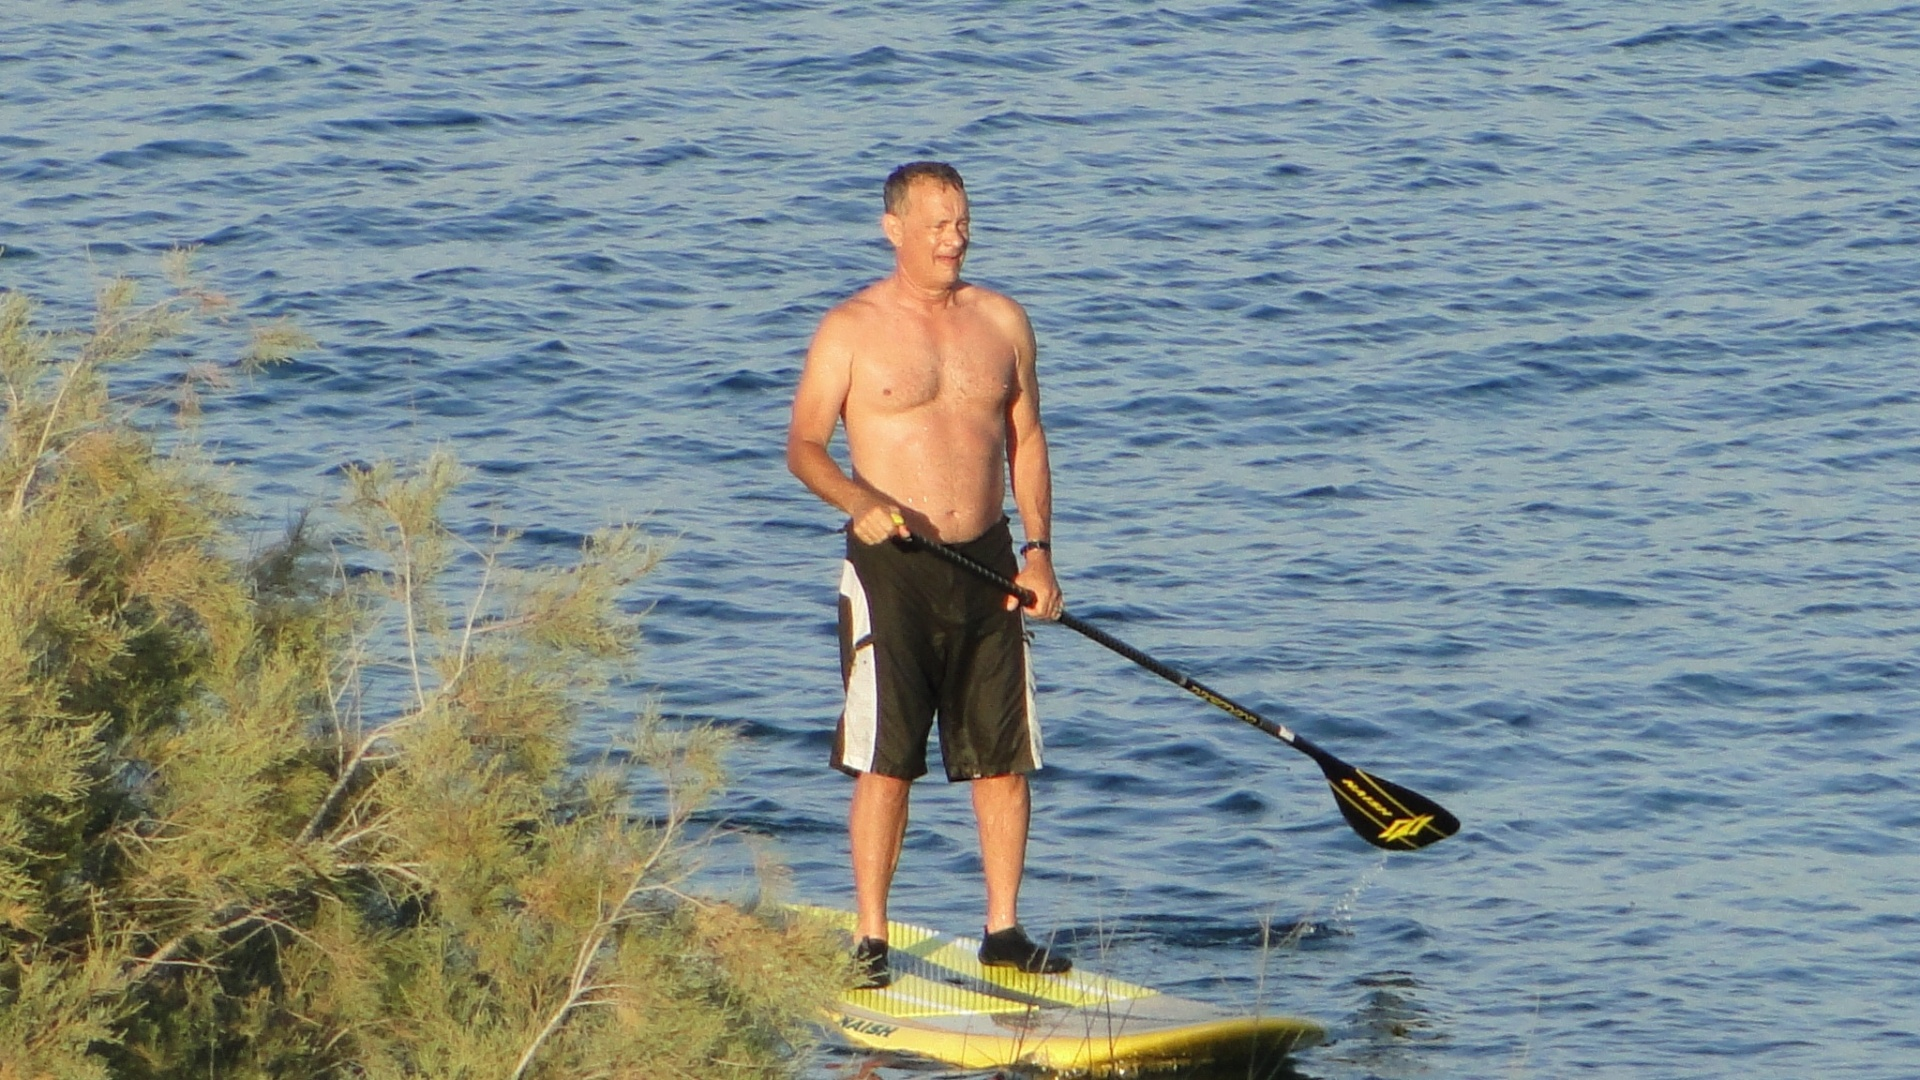 5.ago.2014 - O ator Tom Hanks pratica stand up paddle na Grécia